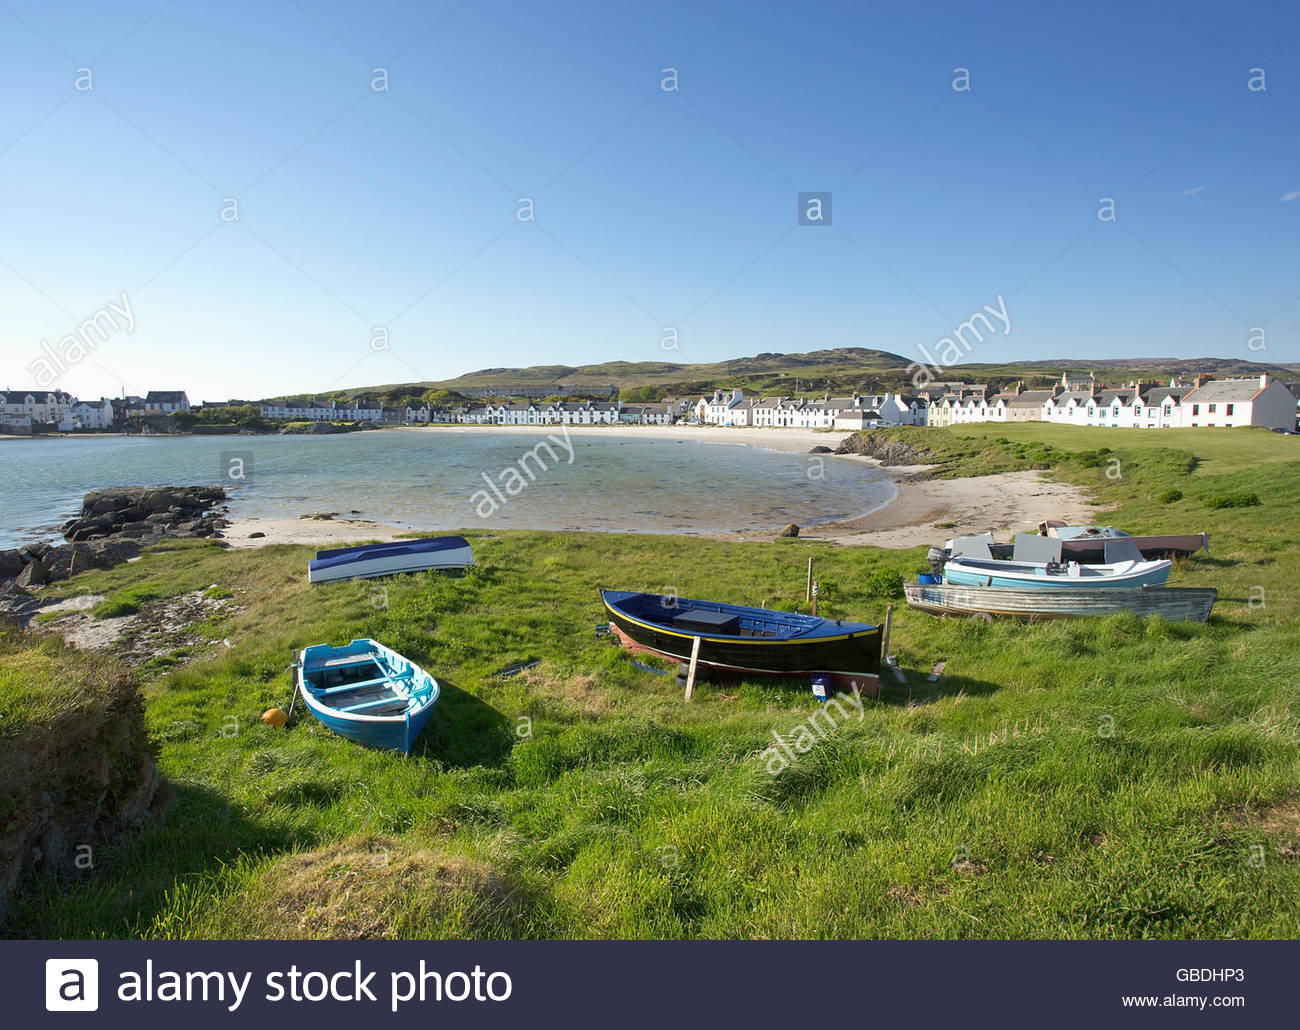 Small boats aground at Port Ellen on the Isle of Islay, Inner Hebrides, Scotland. - Stock Image